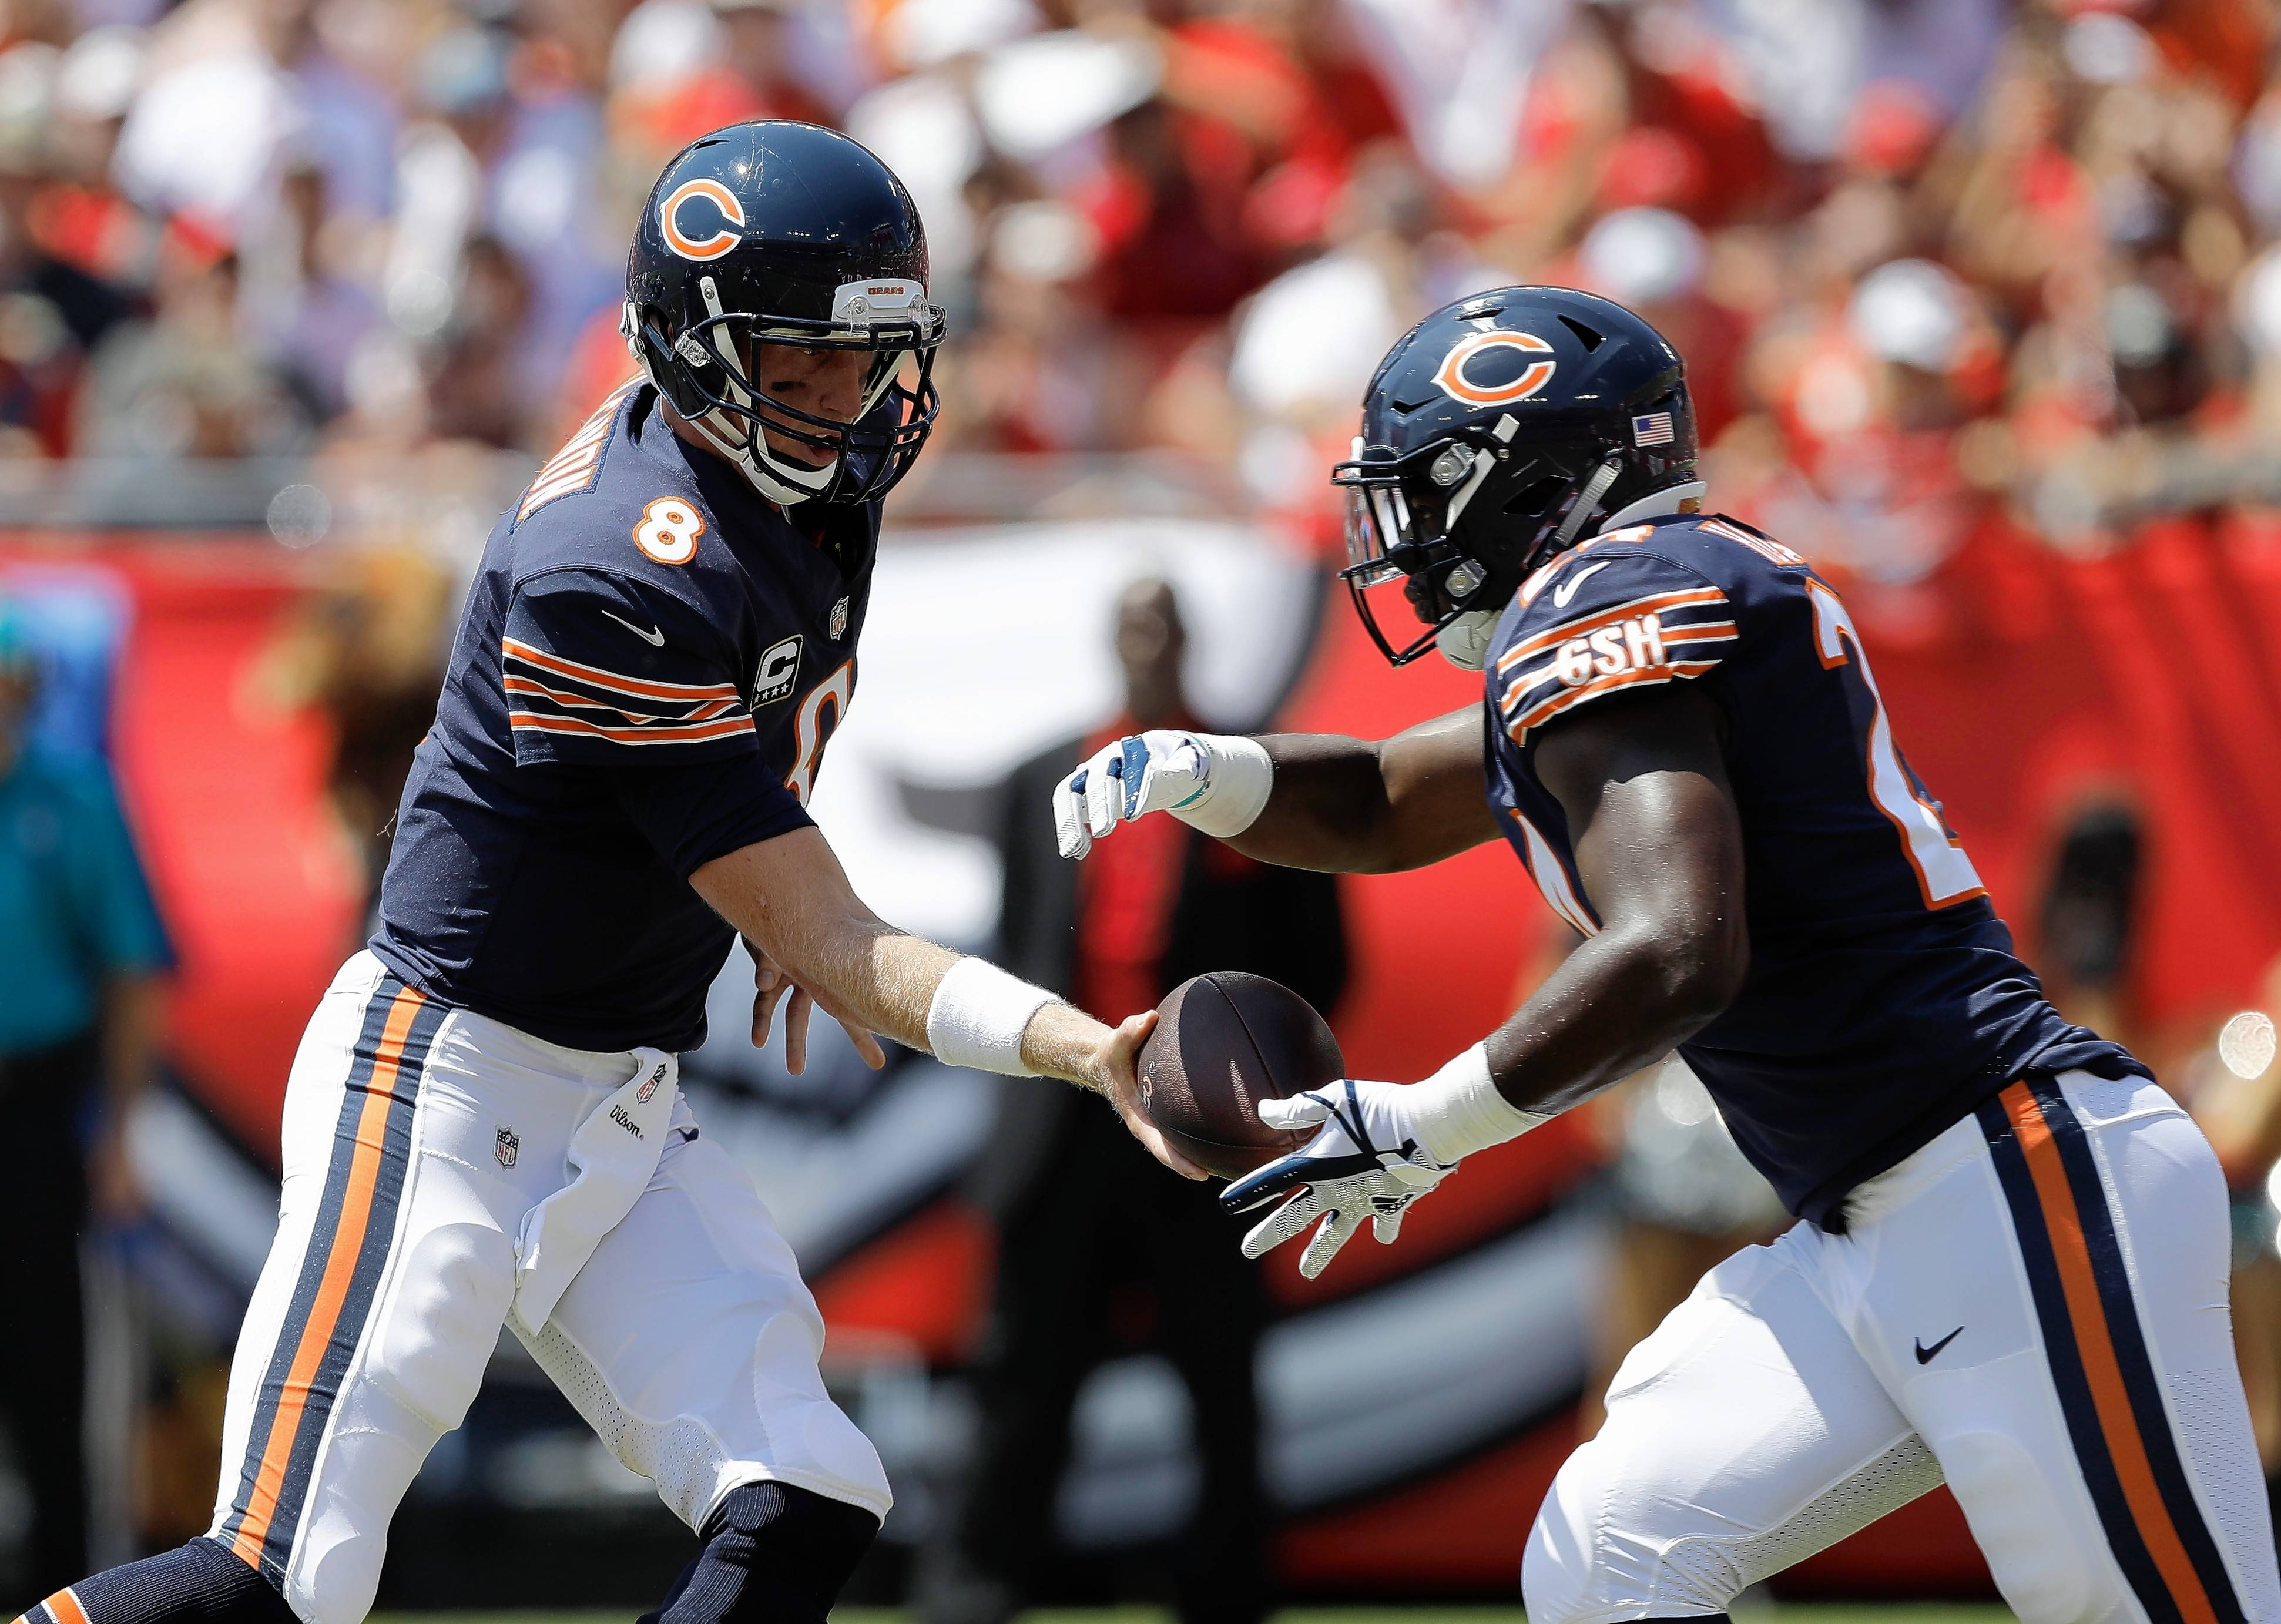 Chicago Bears running back Jordan Howard is off to a slow start after breaking out last year as a rookie. In Sunday's loss against Tampa Bay, Howard averaged just 0.8 yards per carry.